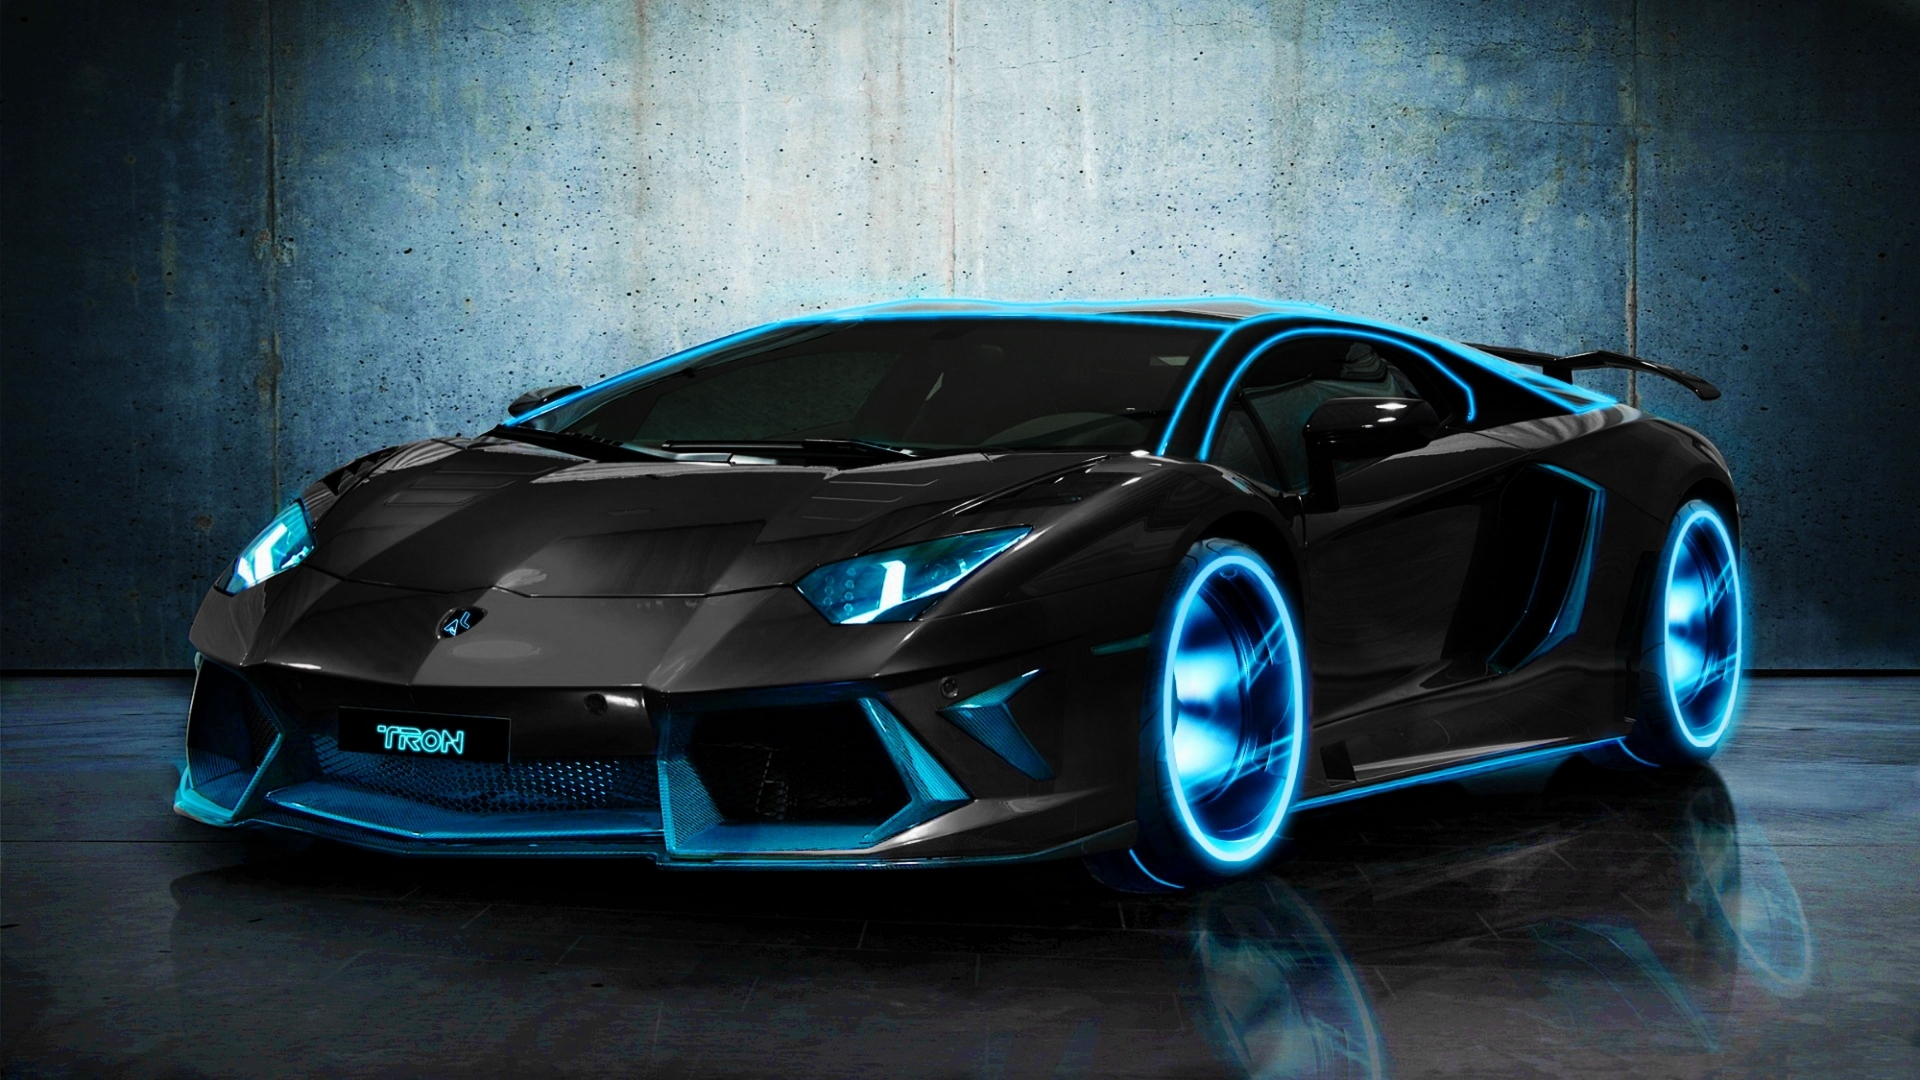 TRON Lamborghini Aventador Exclusive HD Wallpapers 1817 1920x1080